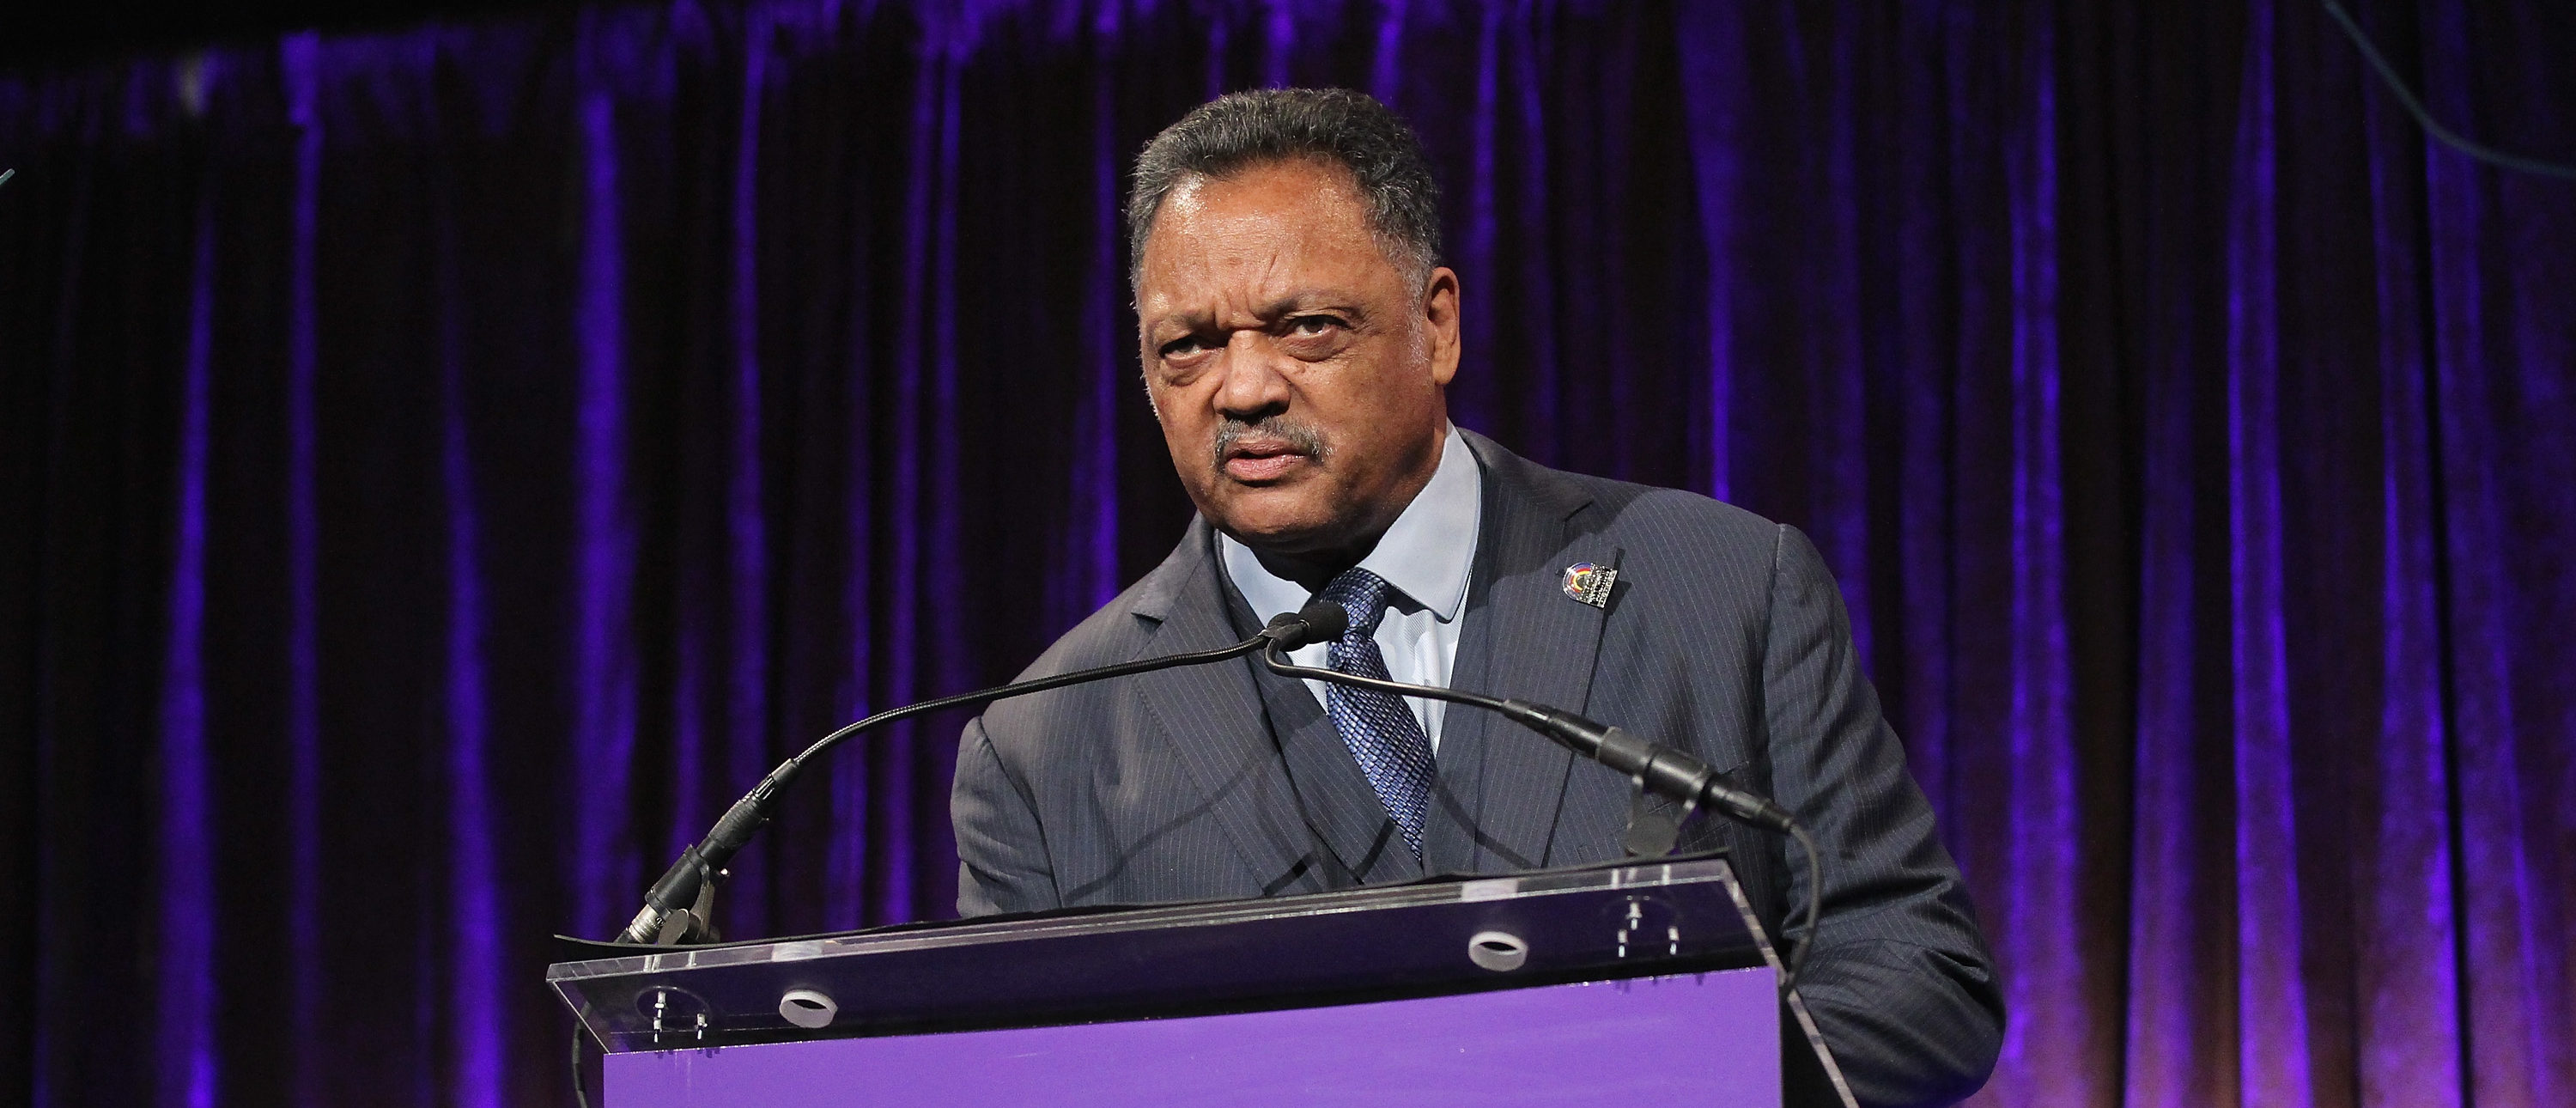 NEW YORK, NY - JANUARY 30: Jesse Jackson speaks onstage during the National CARES Mentoring Movement?s 2nd Annual 'For the Love of Our Children' Gala at Cipriani 42nd Street on January 30, 2017 in New York City. (Photo by Bennett Raglin/Getty Images for for National CARES Mentoring Movement)